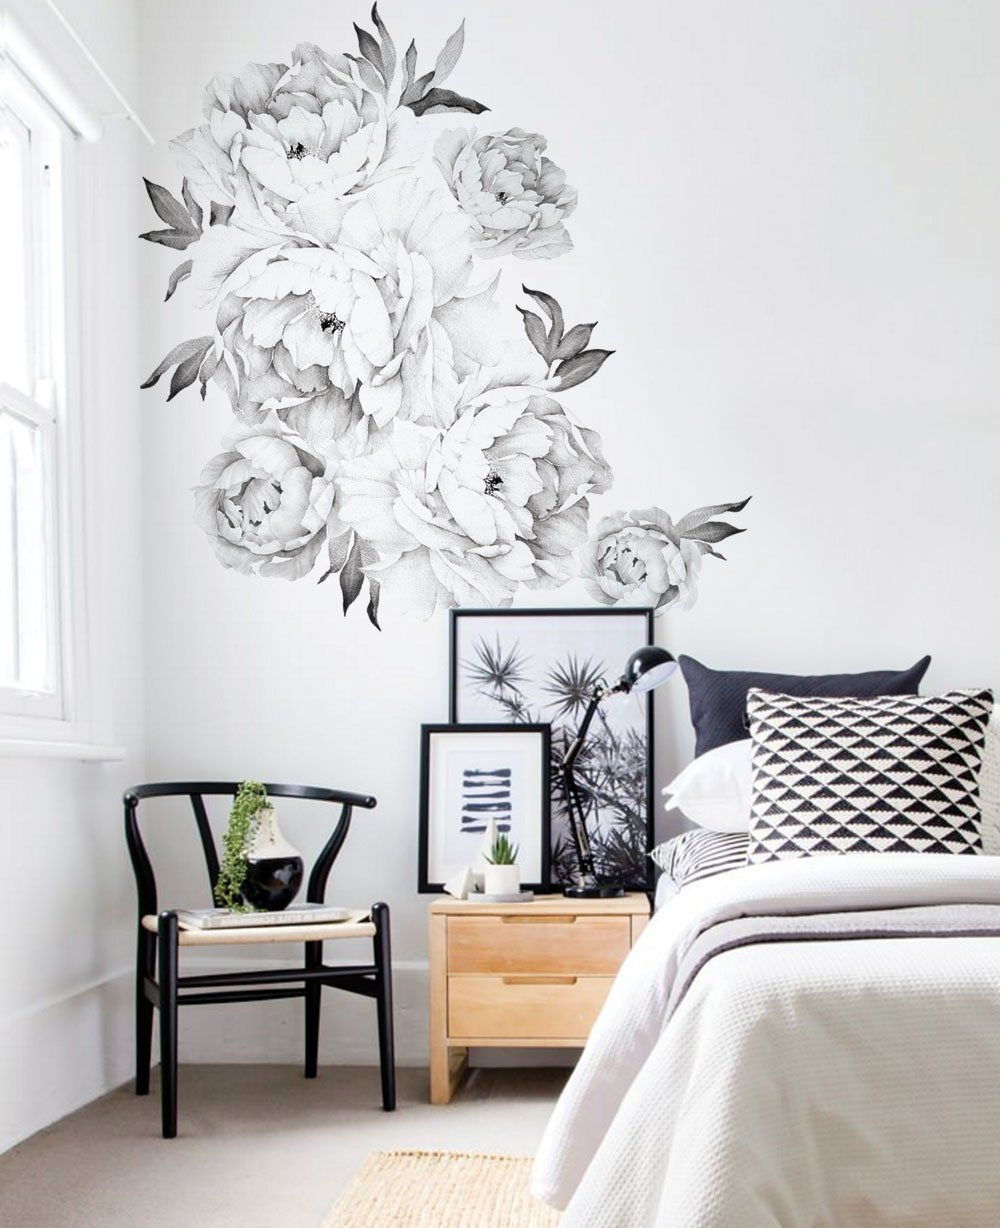 Set of 6 Giant Black and White Peony Wall Decals Роспись